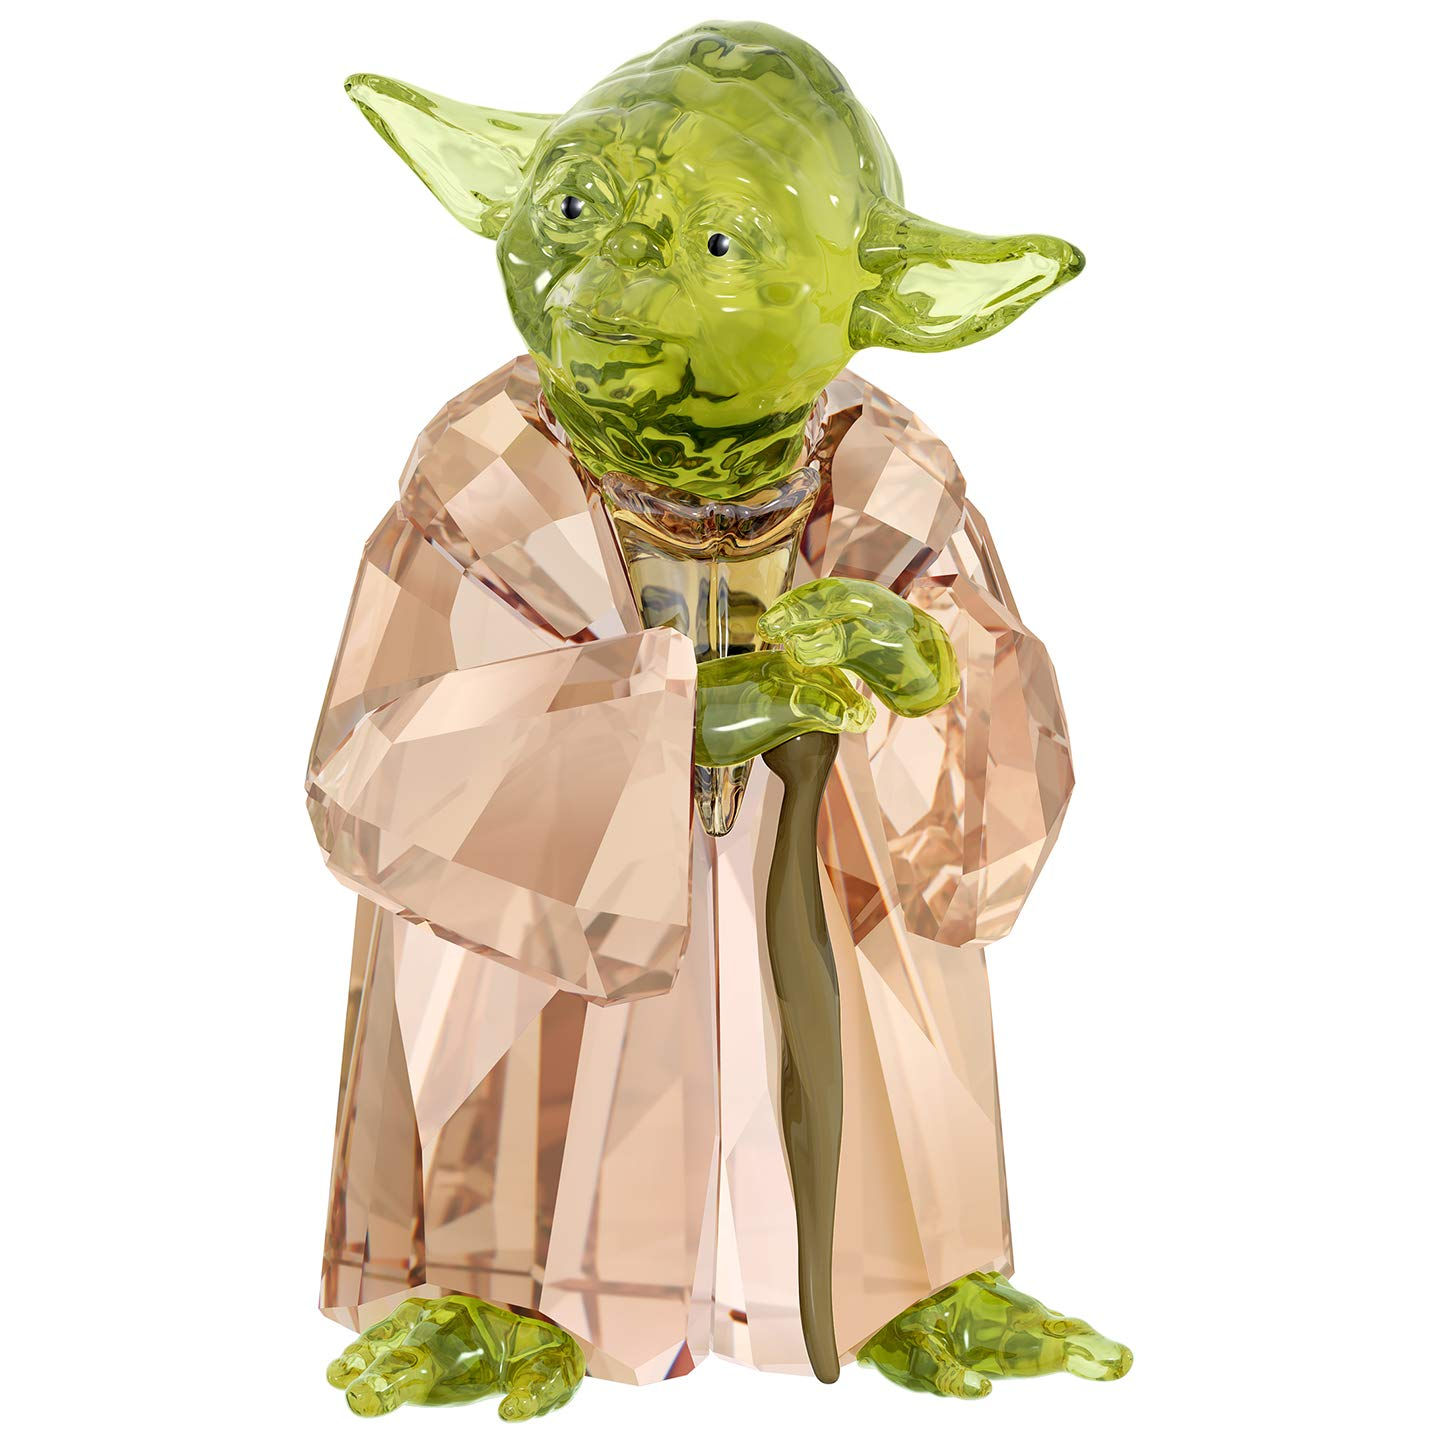 The Star Wars galaxy meets sparkling Swarovski crystal. Continuing our Star Wars collection, this Master Yoda design is a must for collectors. One of the oldest characters in the saga, he is crafted with 291 facets and rests on a cane made of metal with brown varnish. Decoration object. Not a toy.